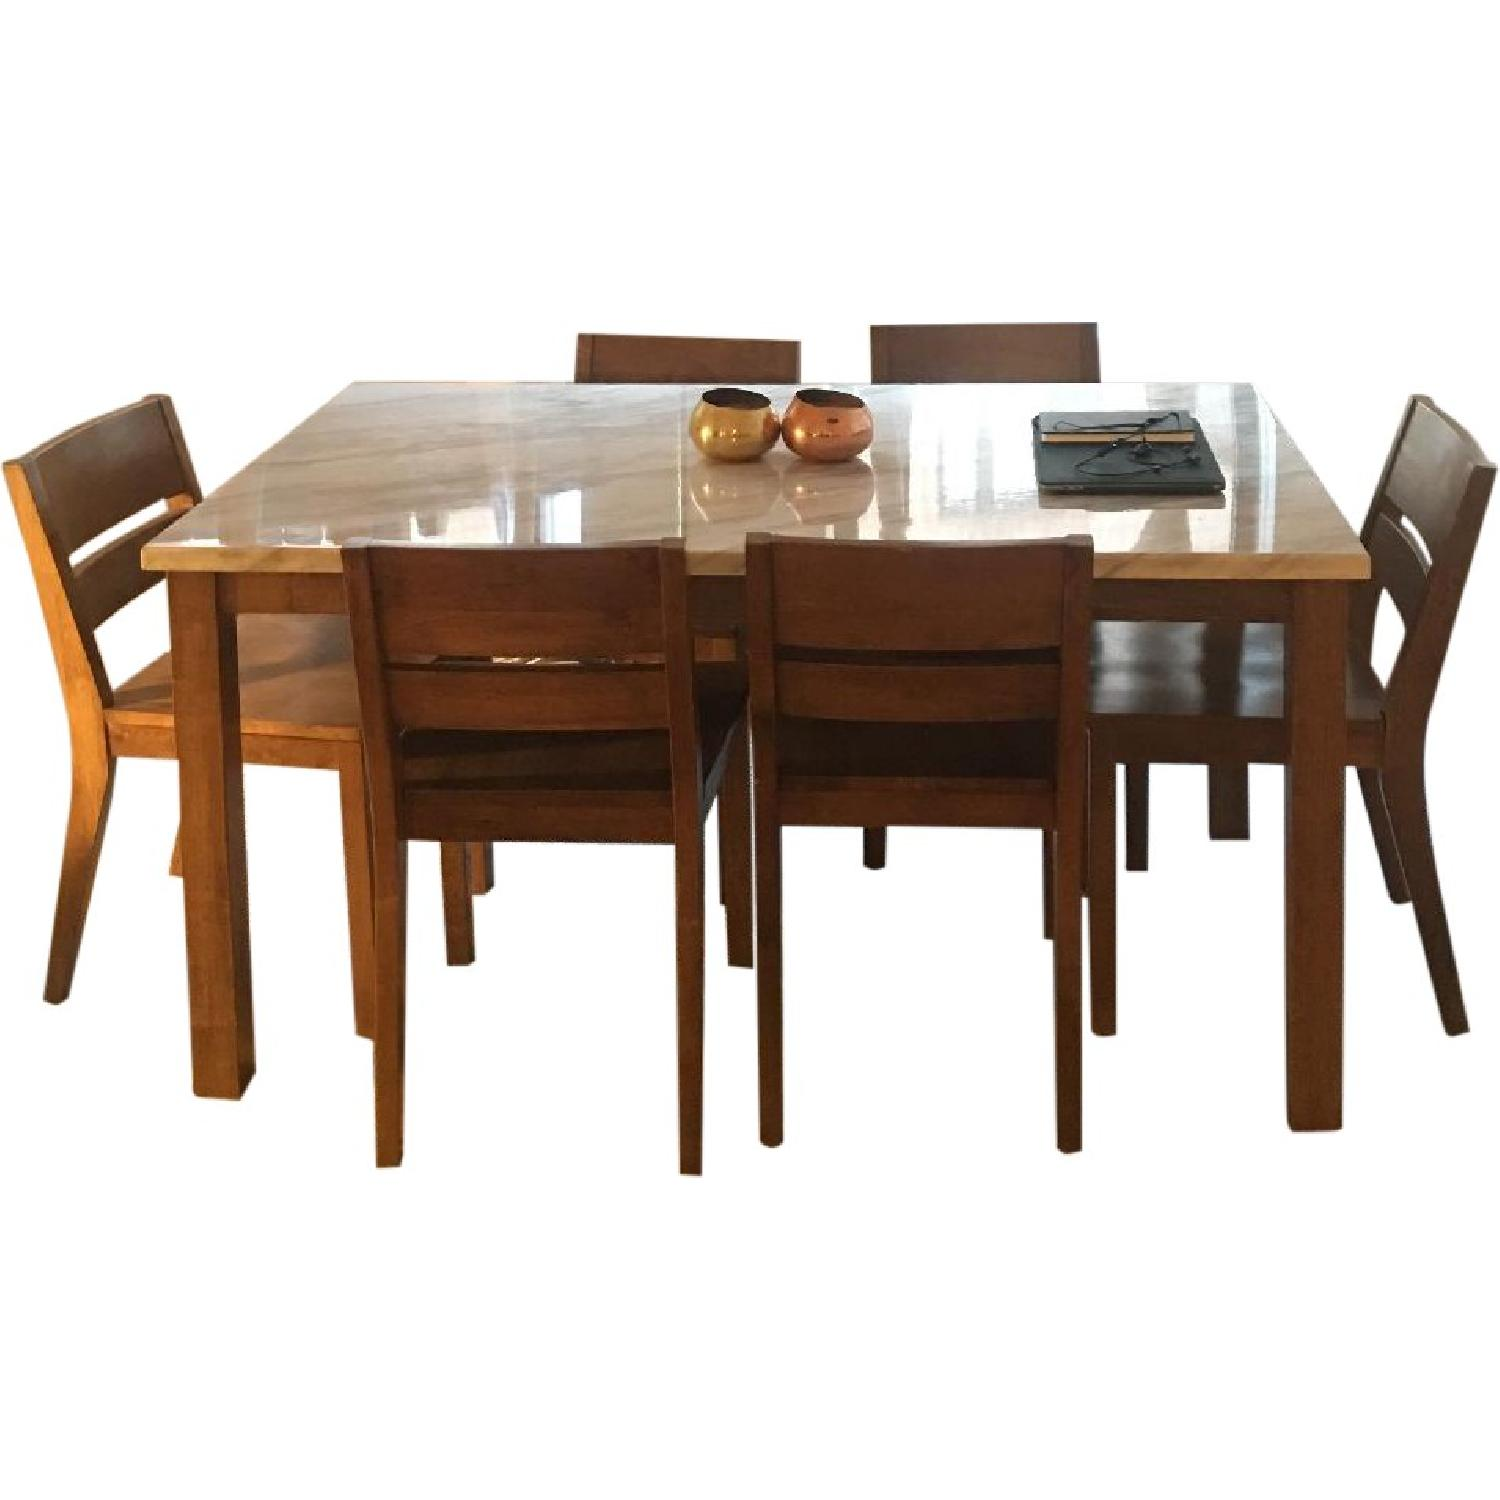 West Elm Faux Marble Wood 7-Piece Dining Set